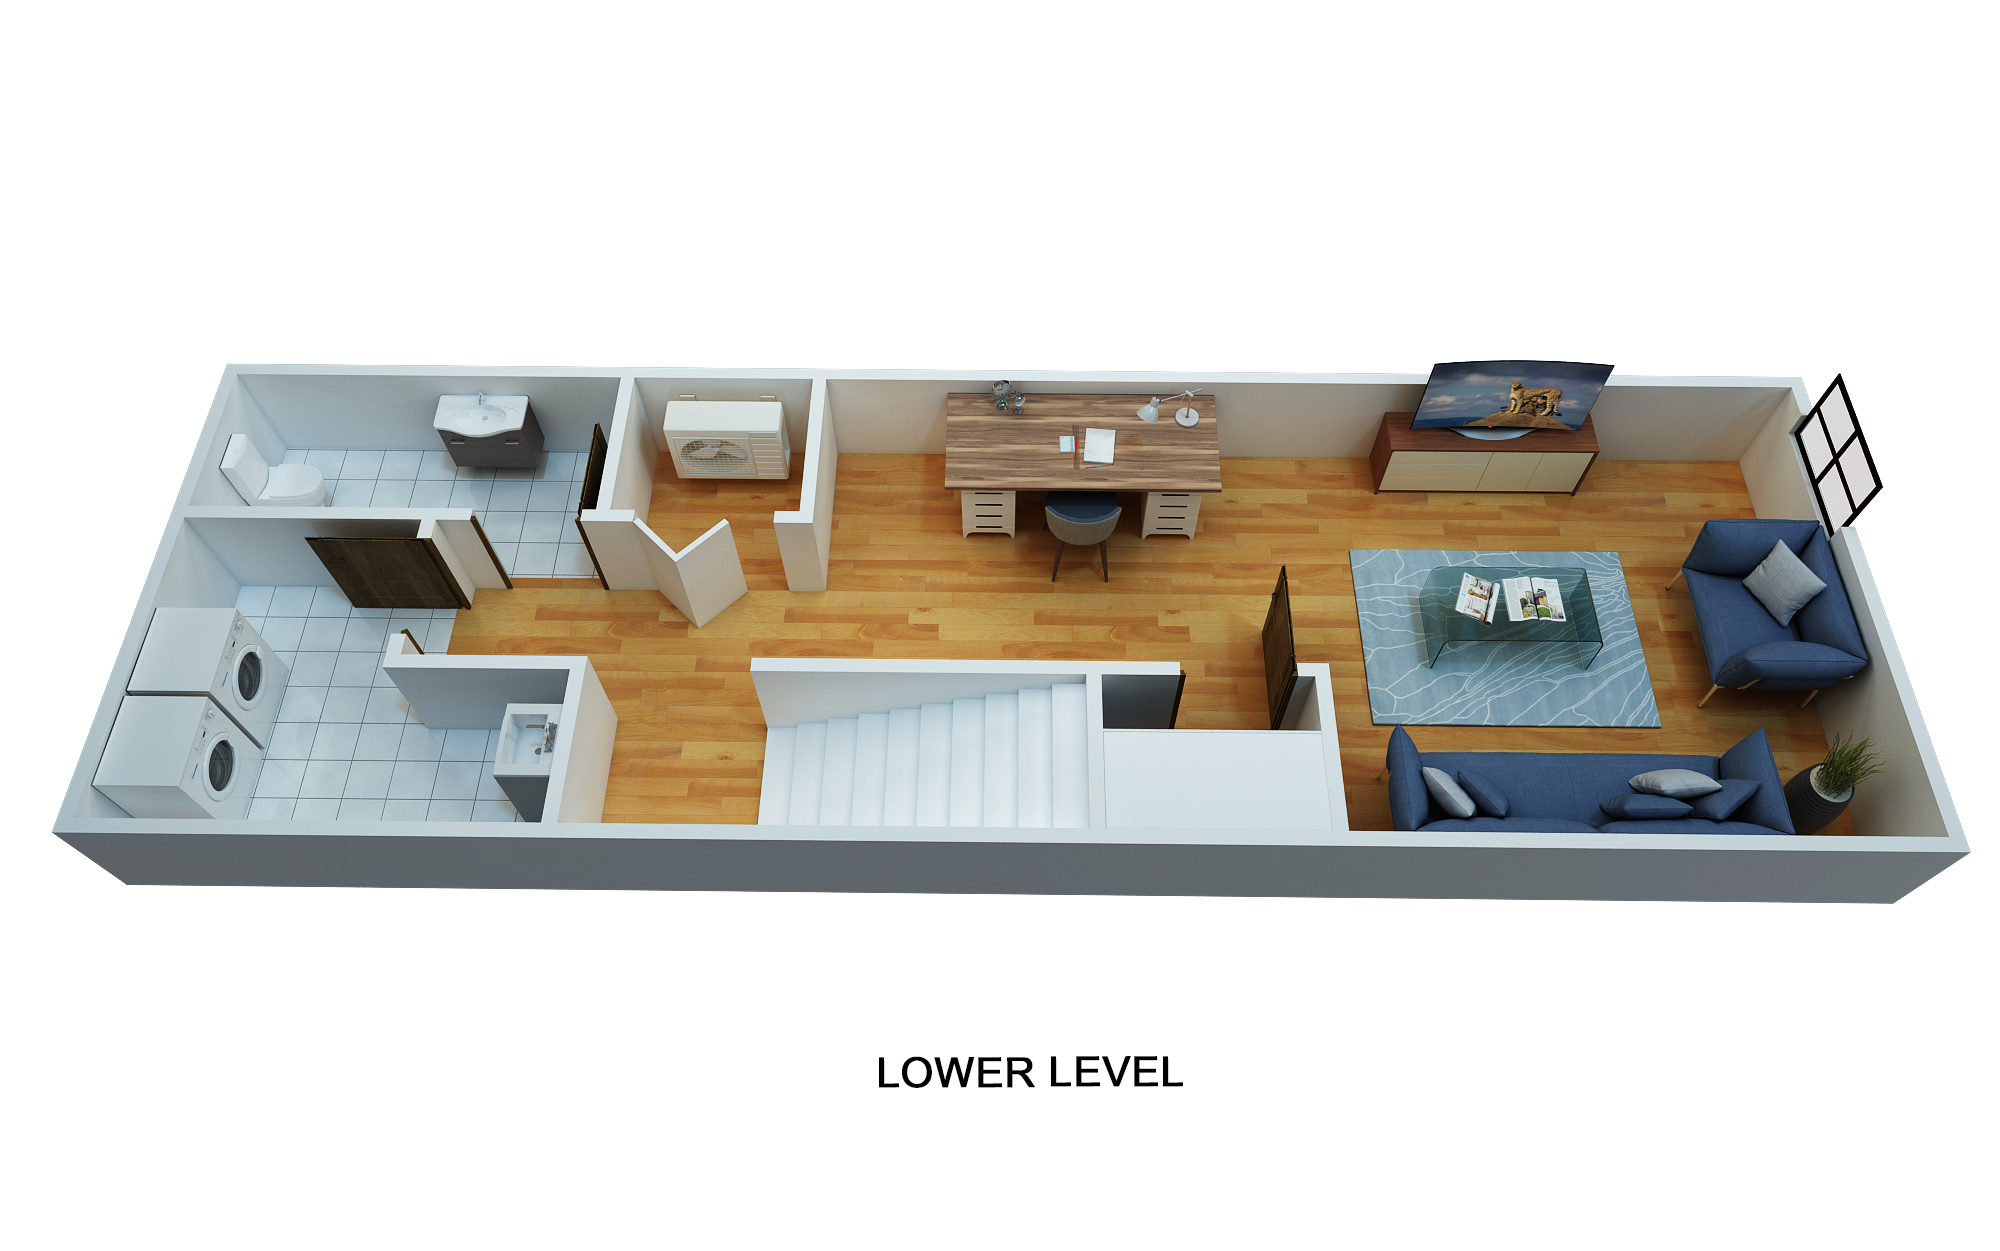 4923-lowerlevel.jpg